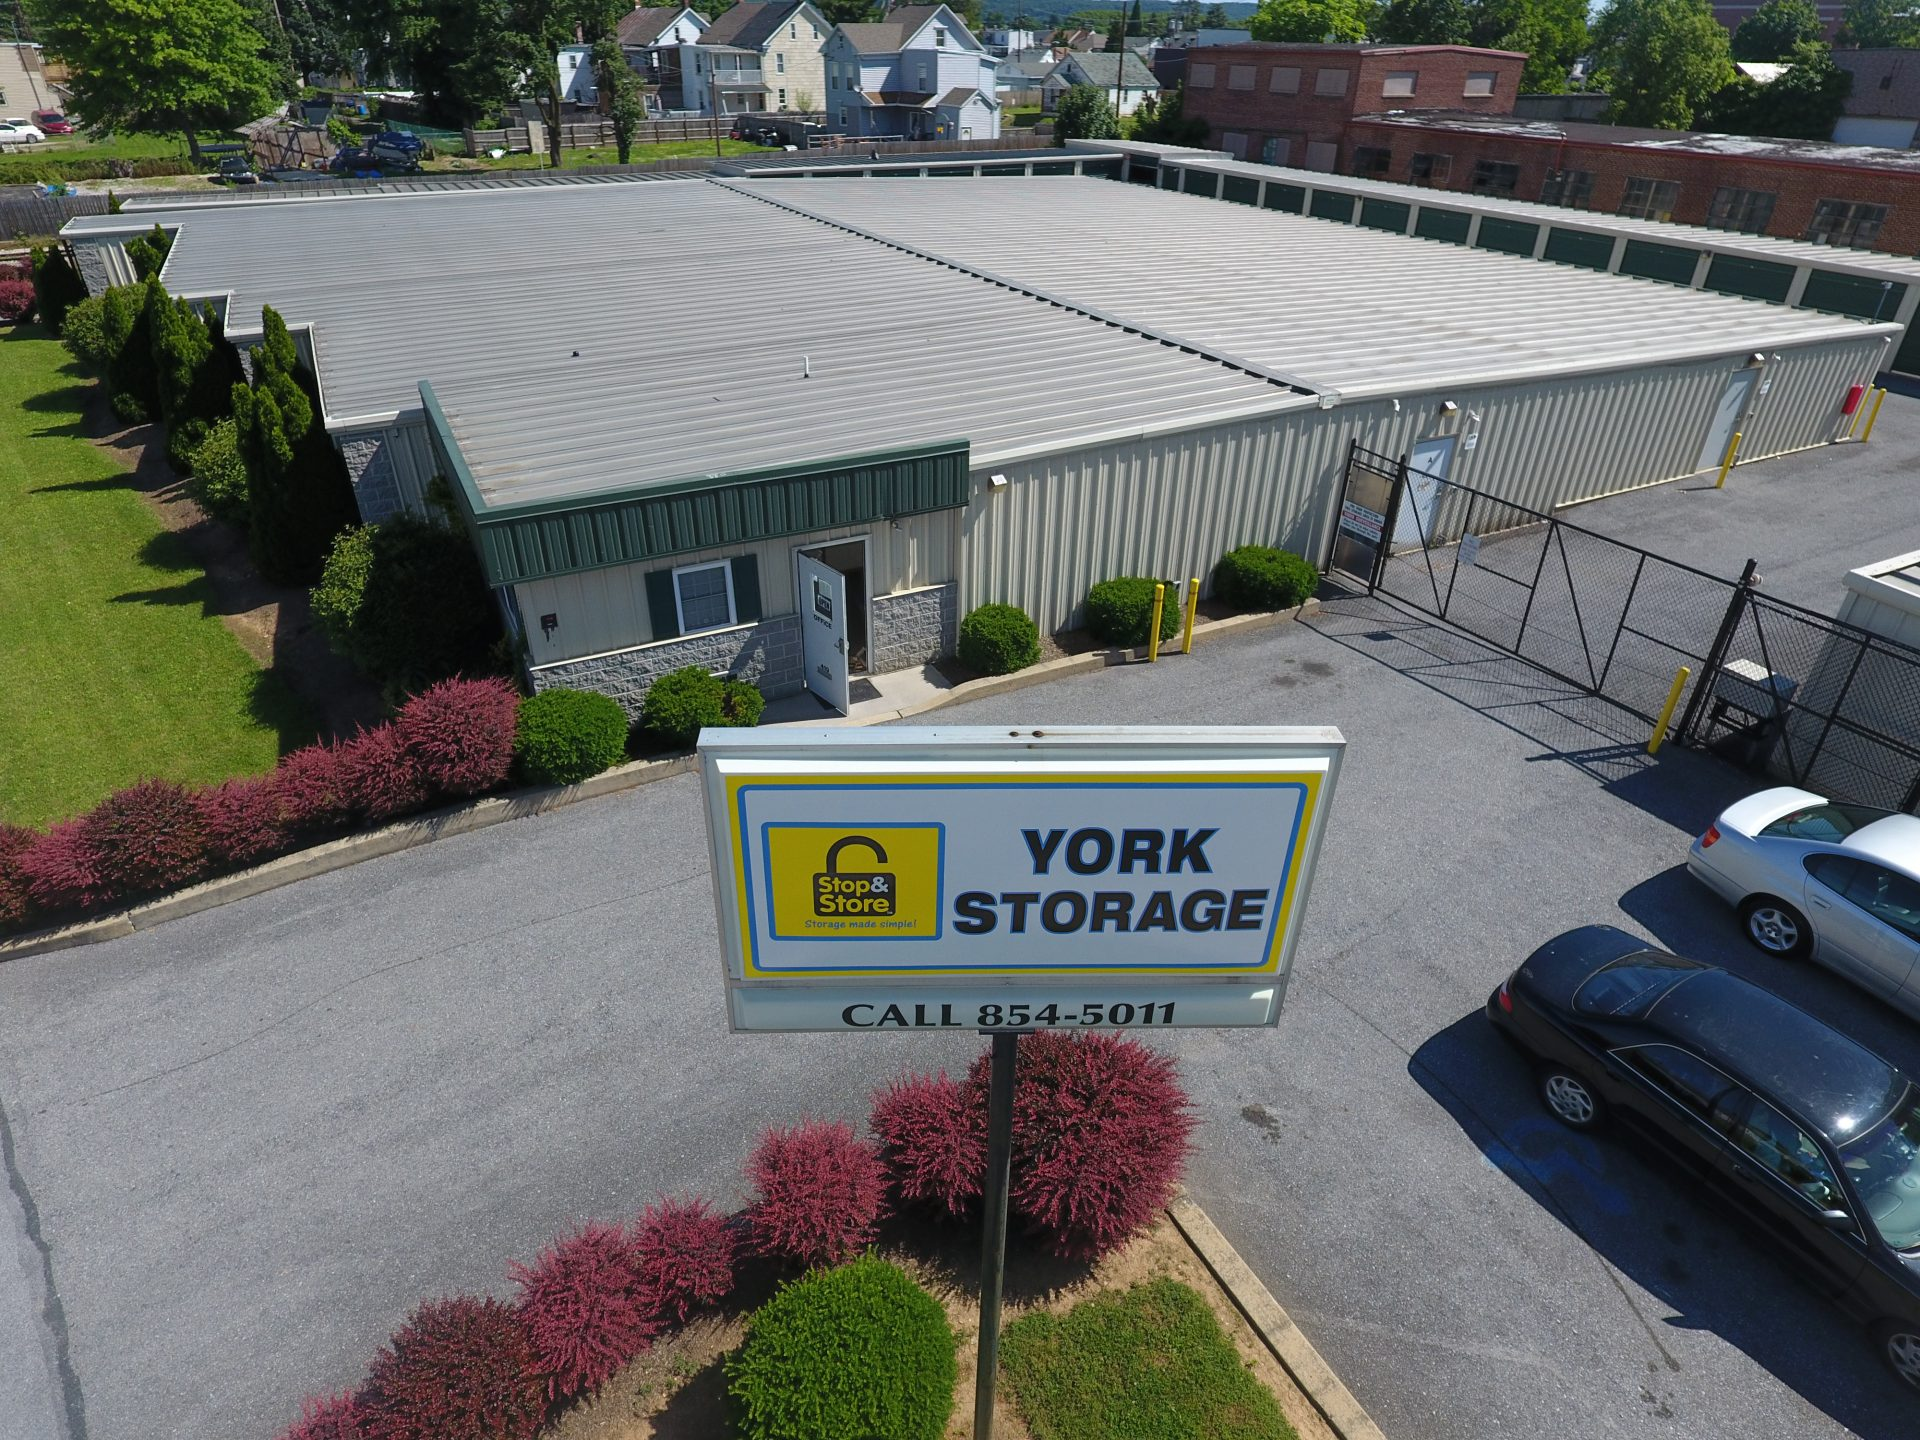 storage york, front, Arial